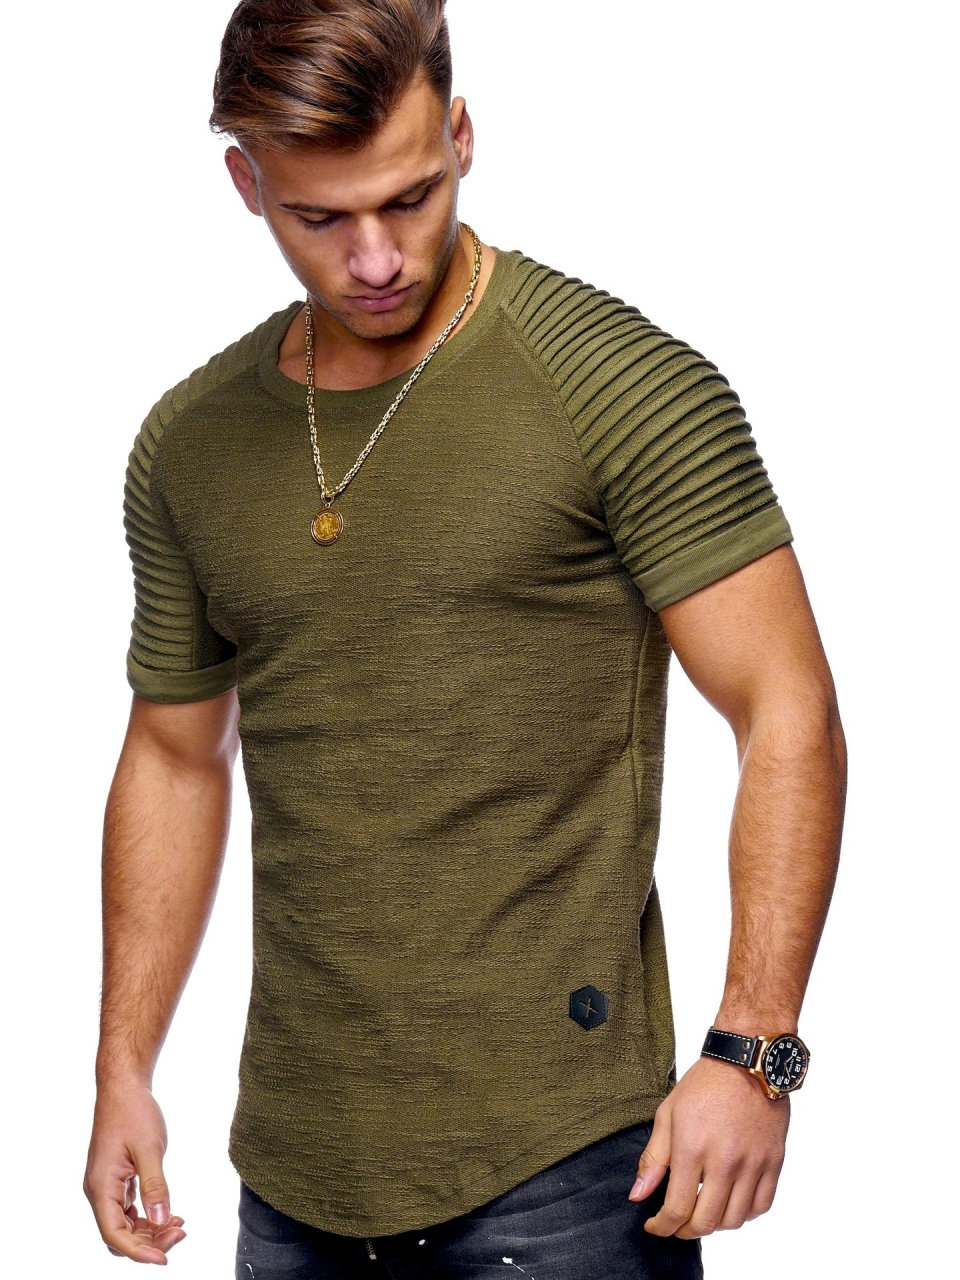 0ec3ebd7b75441 Men s t Shirts Slim Fit Short  Long Sleeve Casual Tops Tee For Men army  green-short sleeve xl  Product No  1414119. Item specifics  Brand